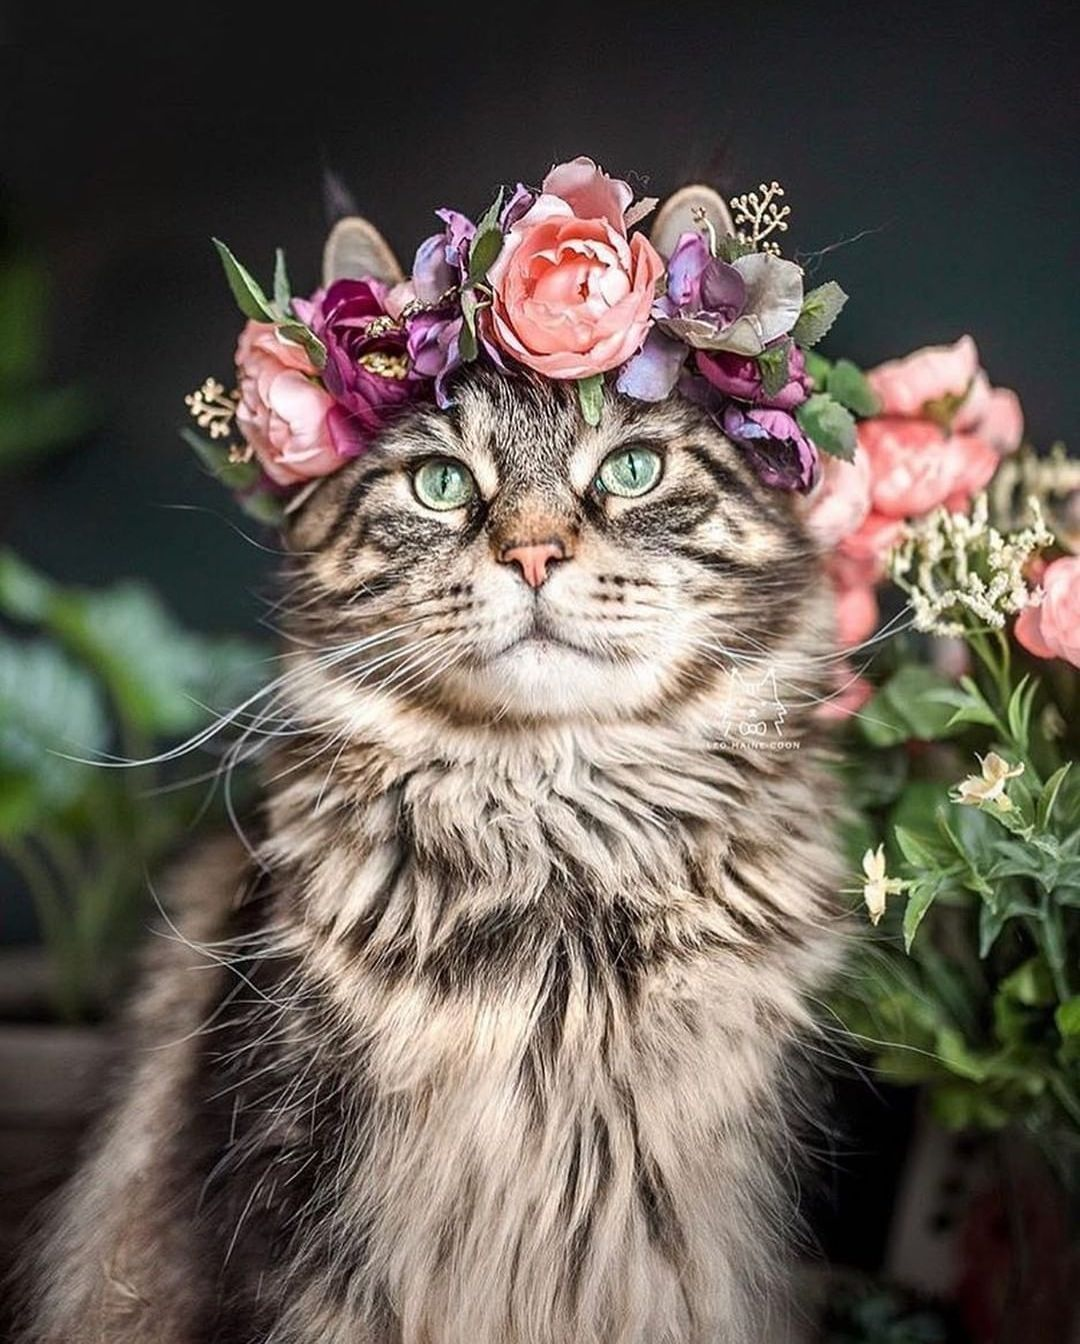 Another instance of #floralFriday done right. 🐱: @leo.mainecoon Flower crown: Yarely (@freyasfloralco). We first featured this on our Instagram account, My Modern Met en Español (@mymodernmetes). Follow us there for even more photography! 👈 #photography #photographylovers #photographysouls #animalphotography #animalphotographyofinstagram #flowerart #flowerartist #flowerartgraphy #flowercrowns